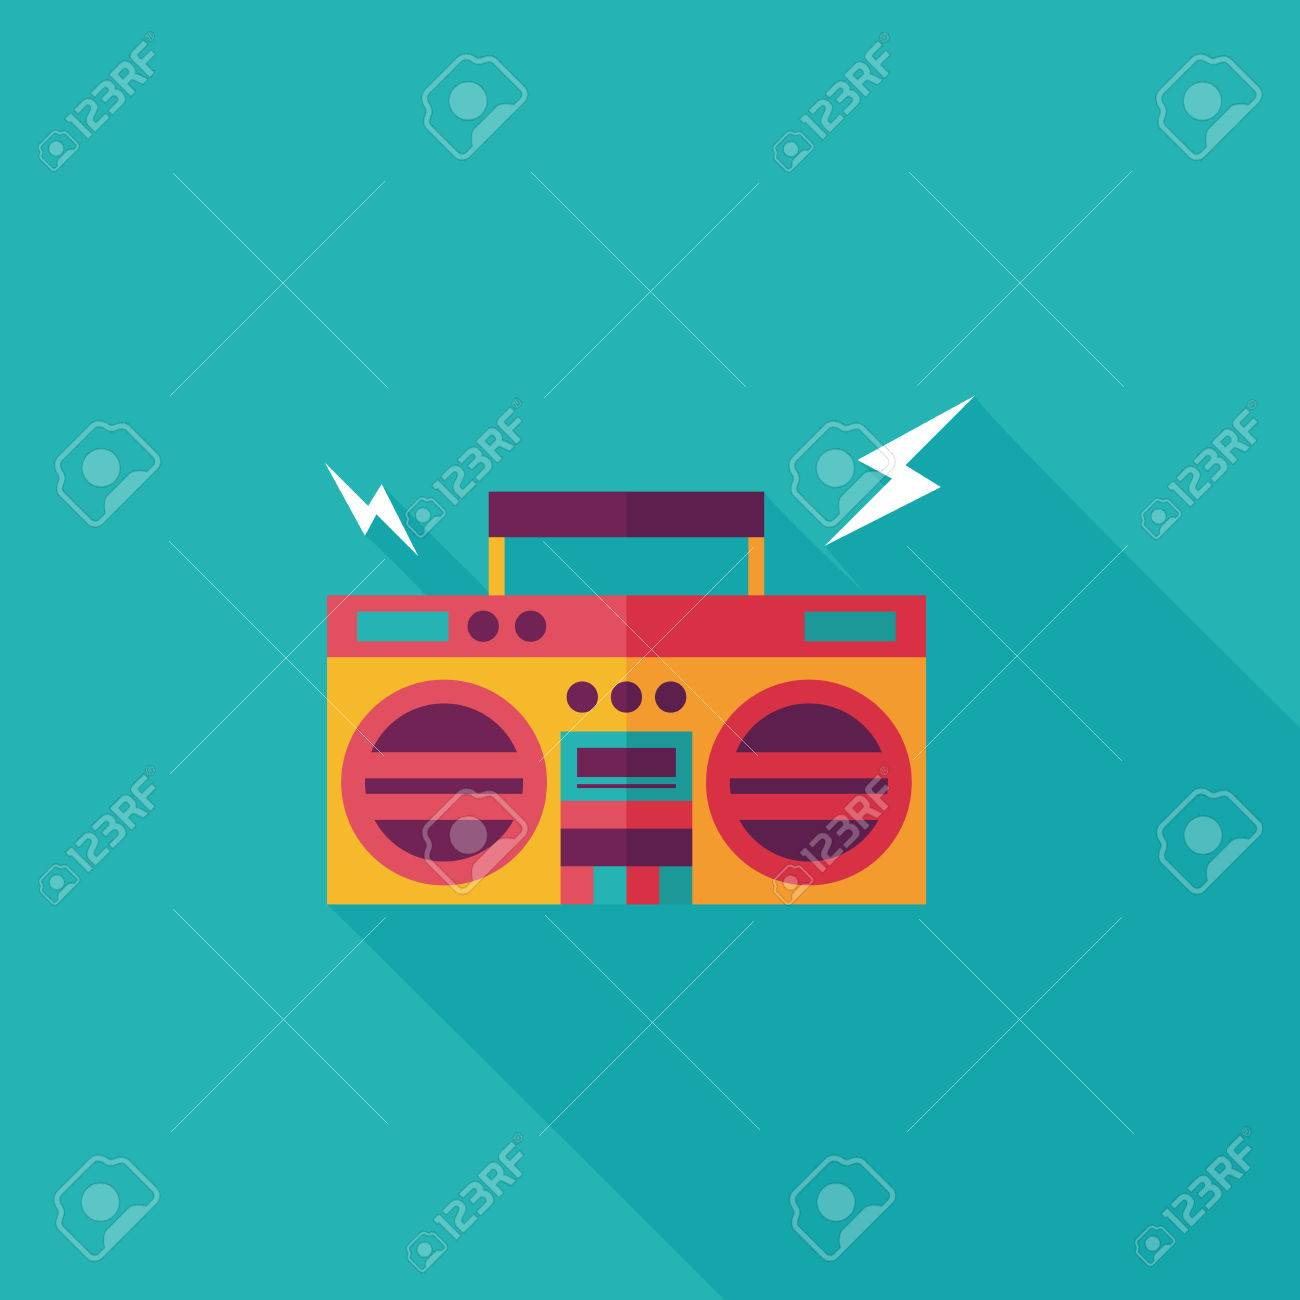 ghetto blaster audio flat icon with long shadow,eps10 - 31697246